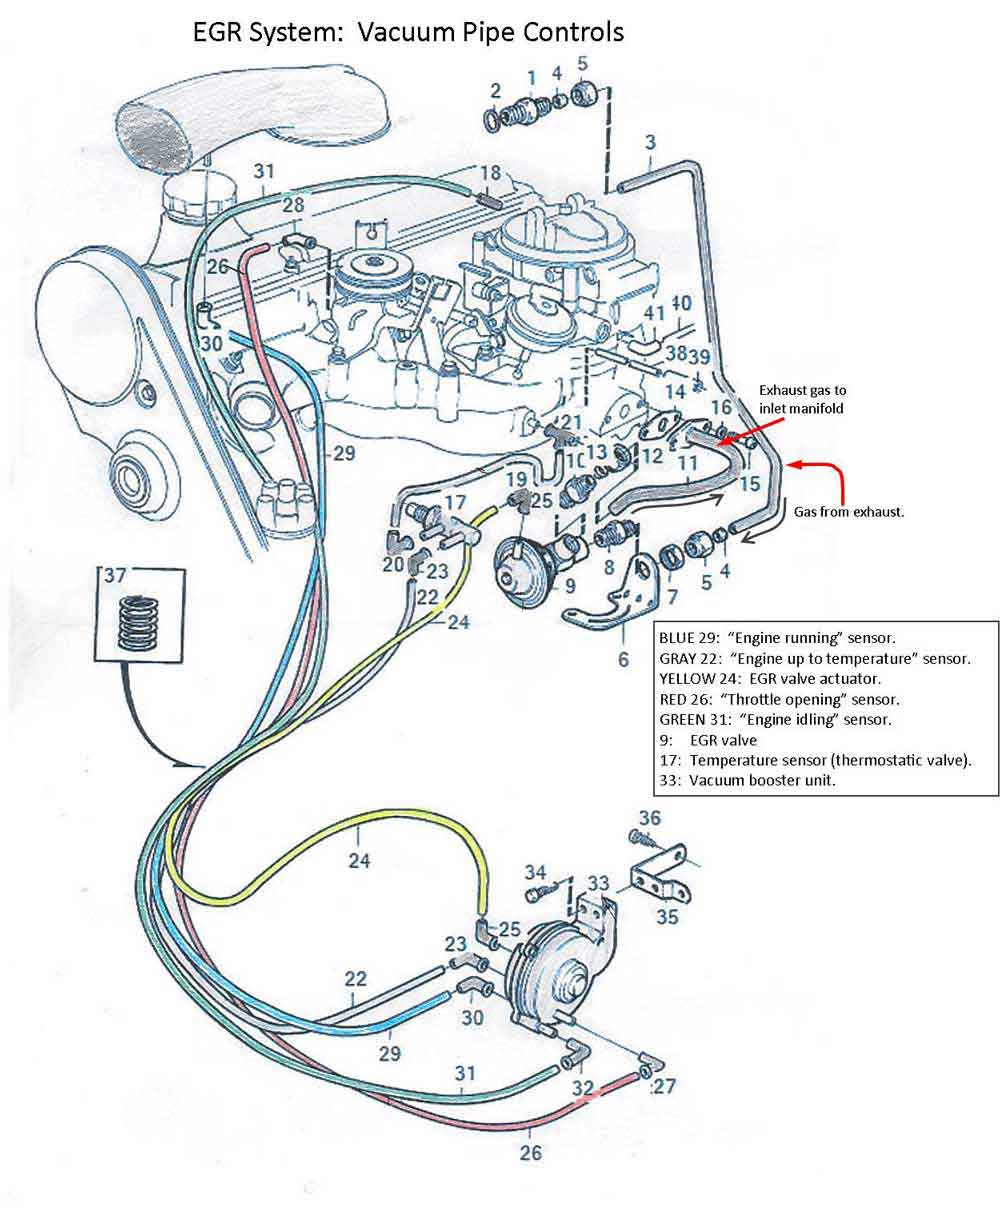 vac B230K 89 EGR volvo vacuum diagrams 1990 Volvo 240 Wiring Manual at edmiracle.co